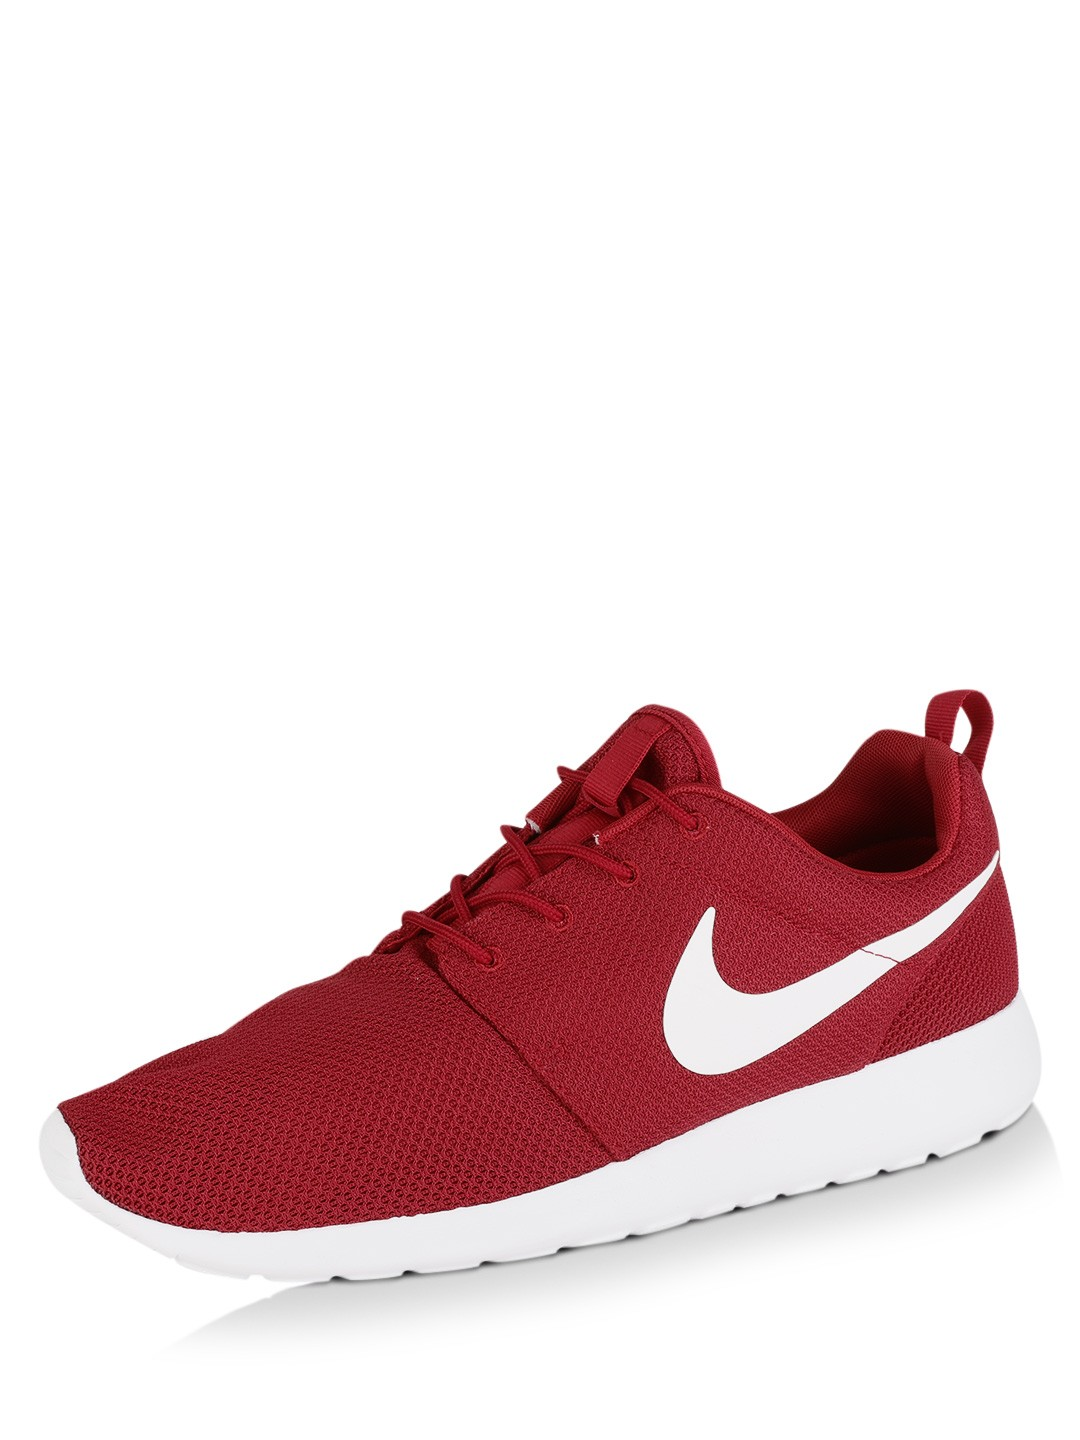 premium selection c6d38 ff5d3 Buy Nike Red/White Roshe One Trainers for Men Online in India